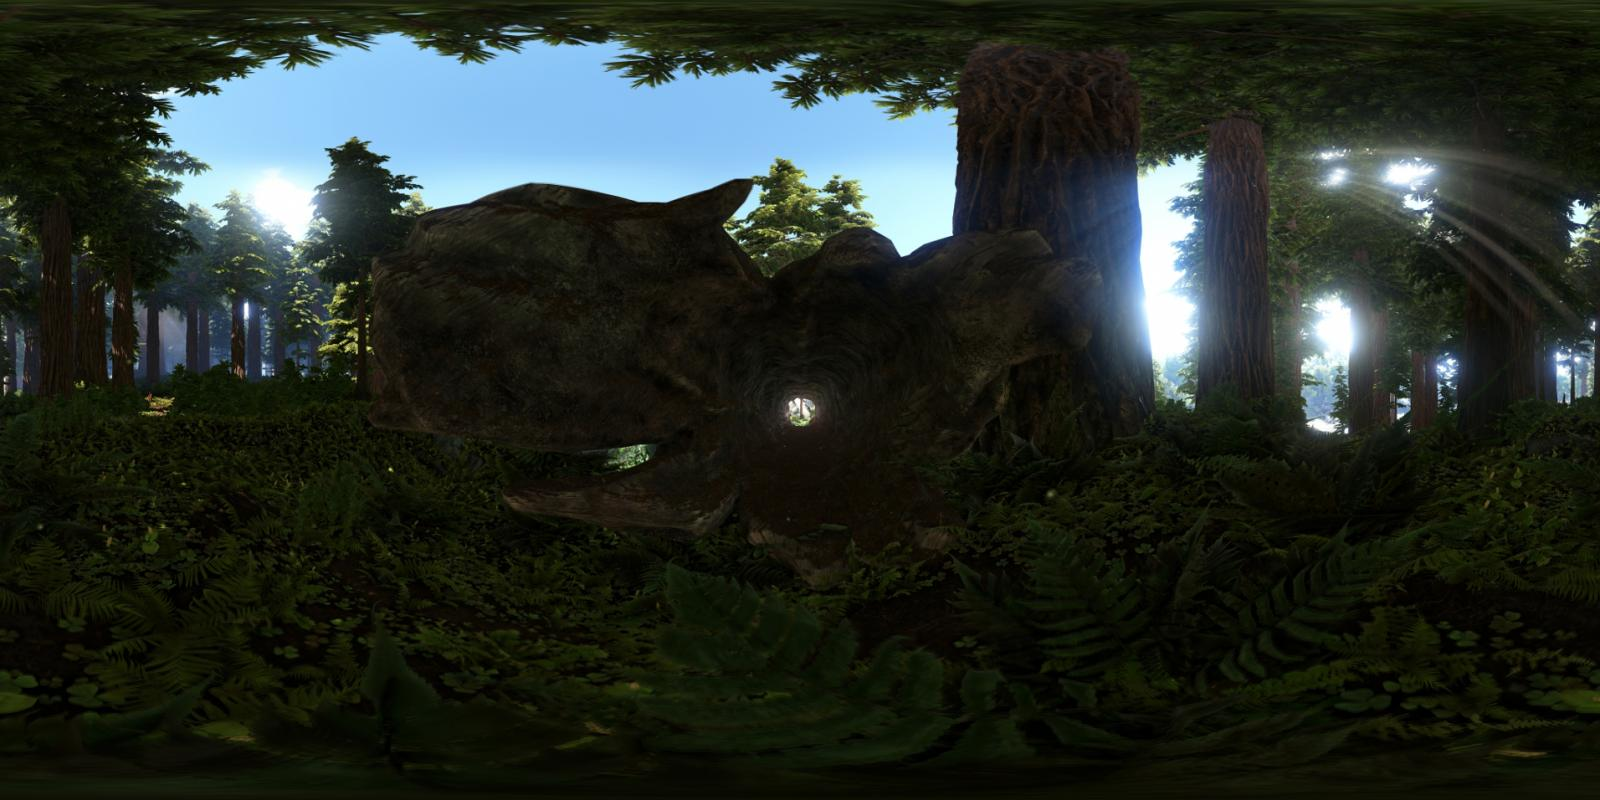 large.59175ef6cb642_FataL1ty-Endor-Panoramic360Stereoscopic3Dsta.jpg